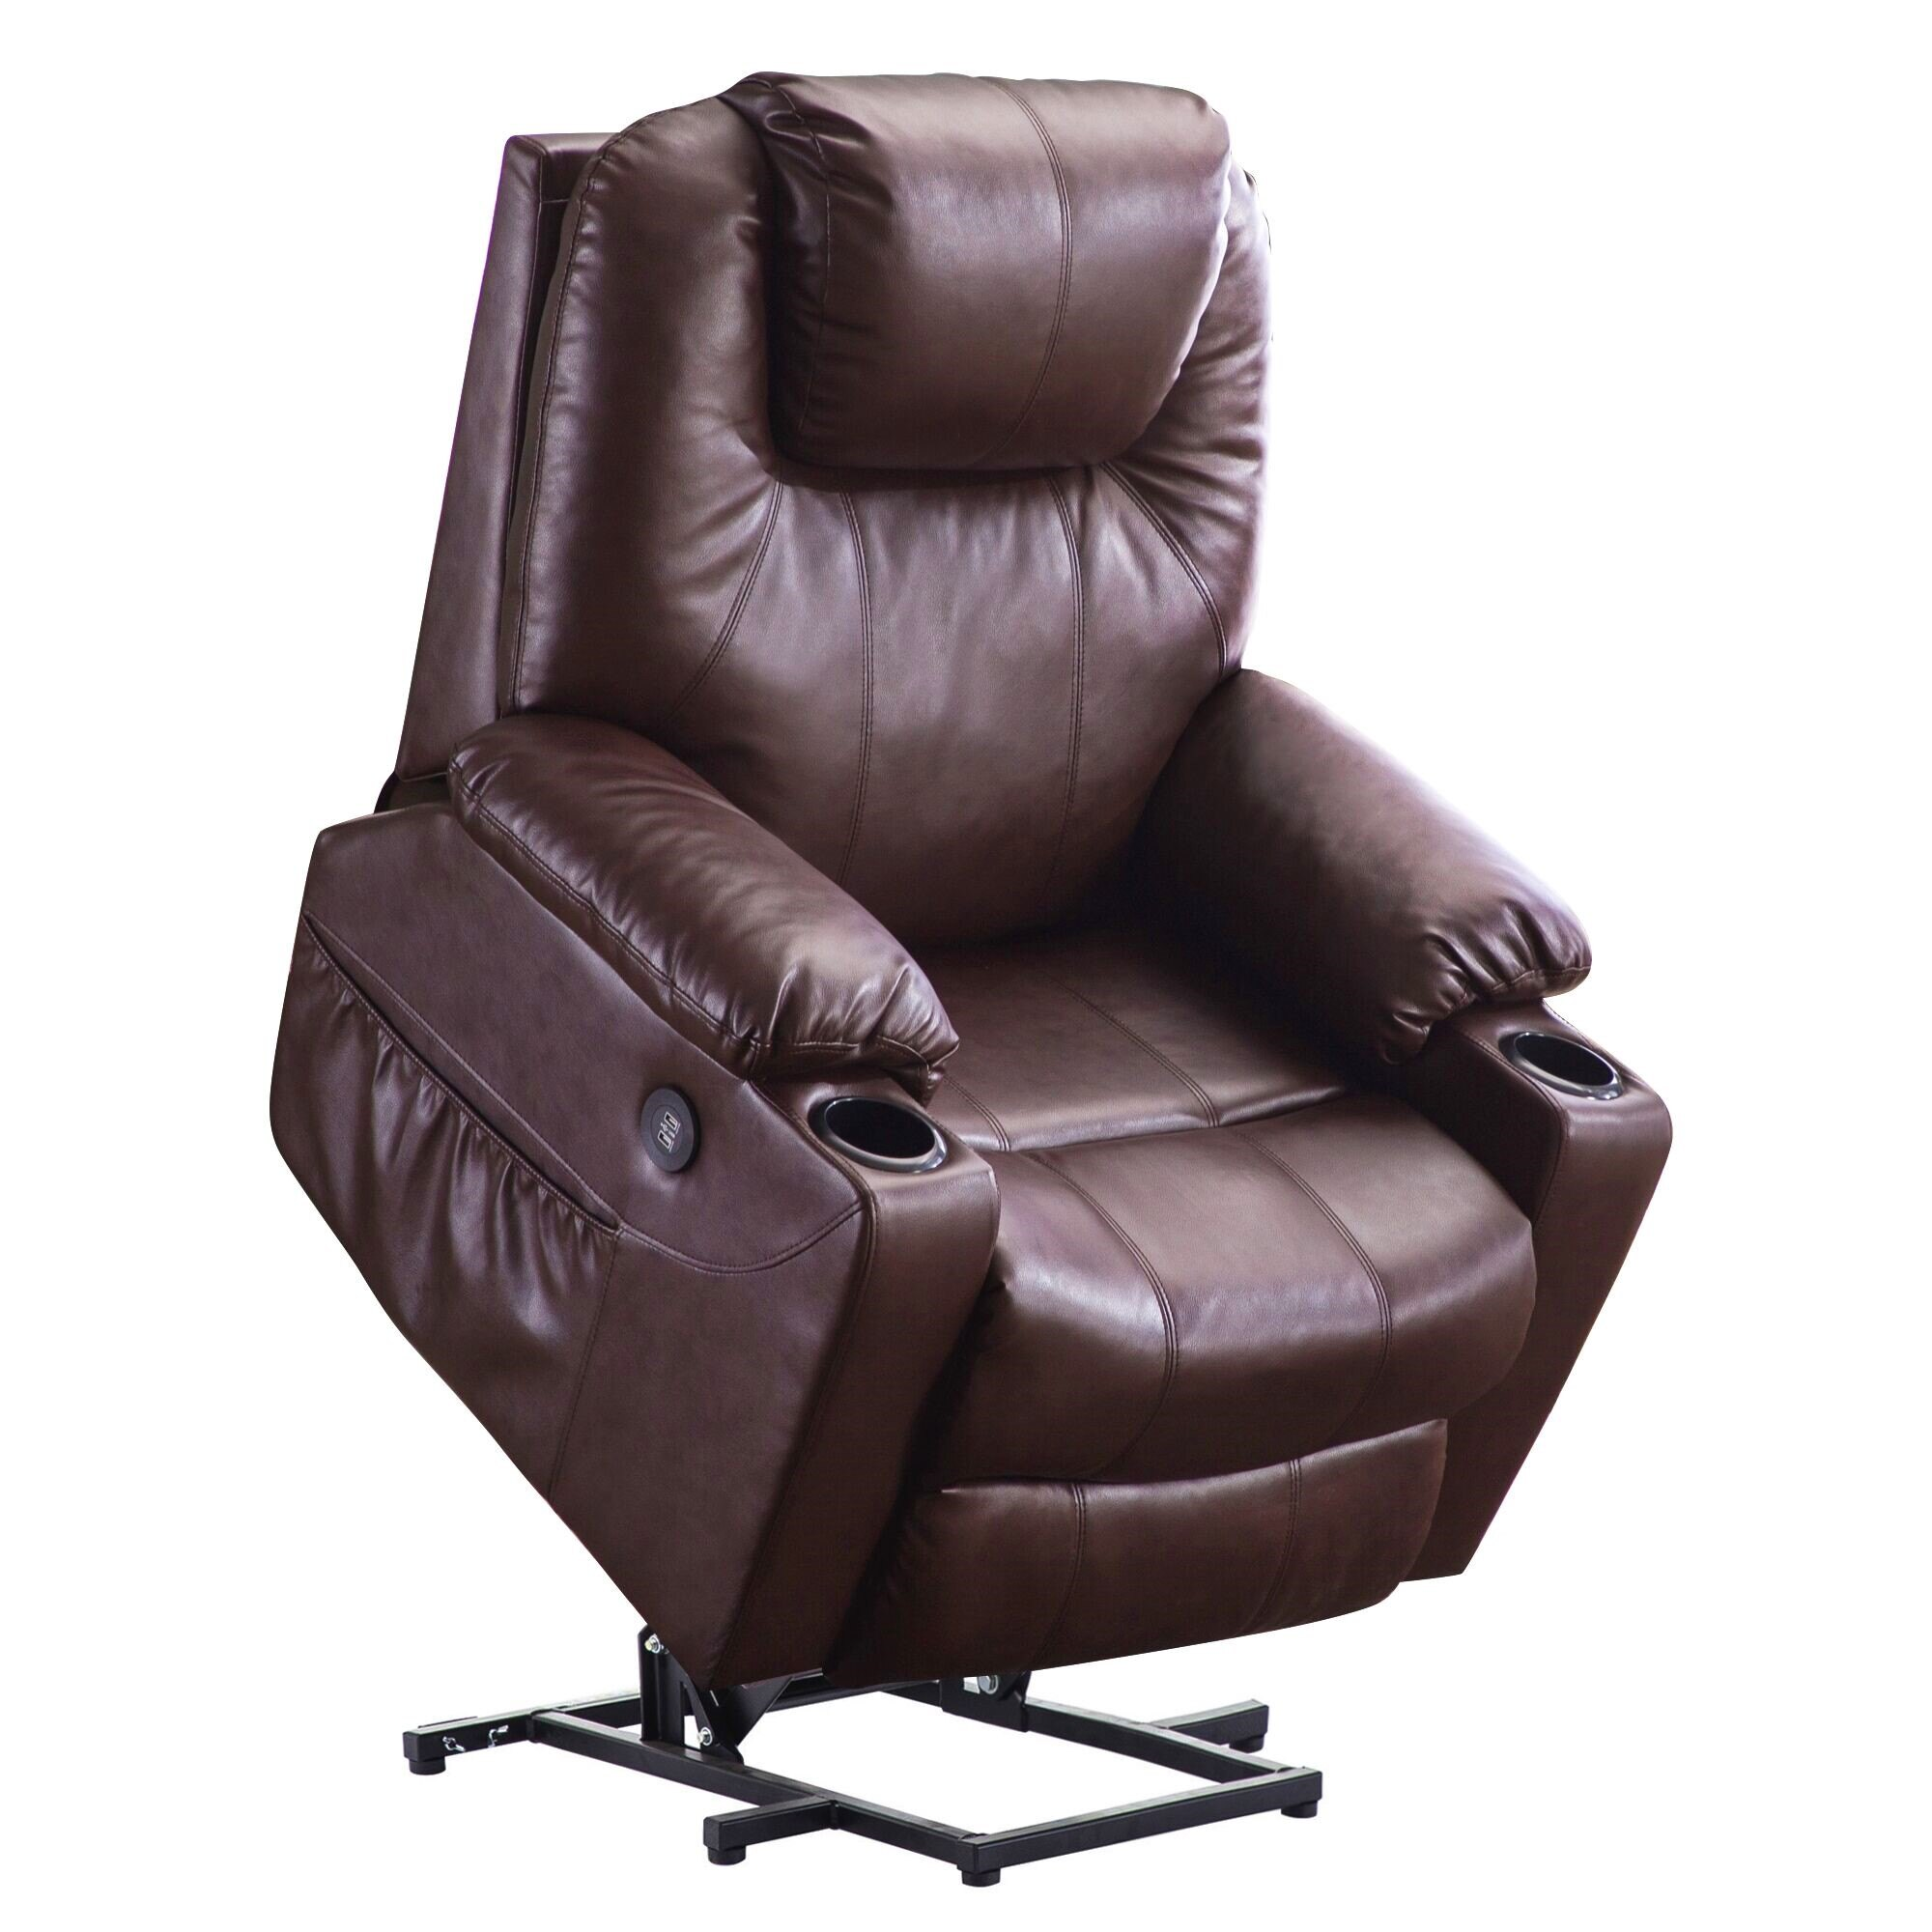 Brilliant Mcombo Electric Power Lift Recliner Massage Sofa Heated Chair Lounge W Remote Control Usb Charging Ports 7040 Machost Co Dining Chair Design Ideas Machostcouk